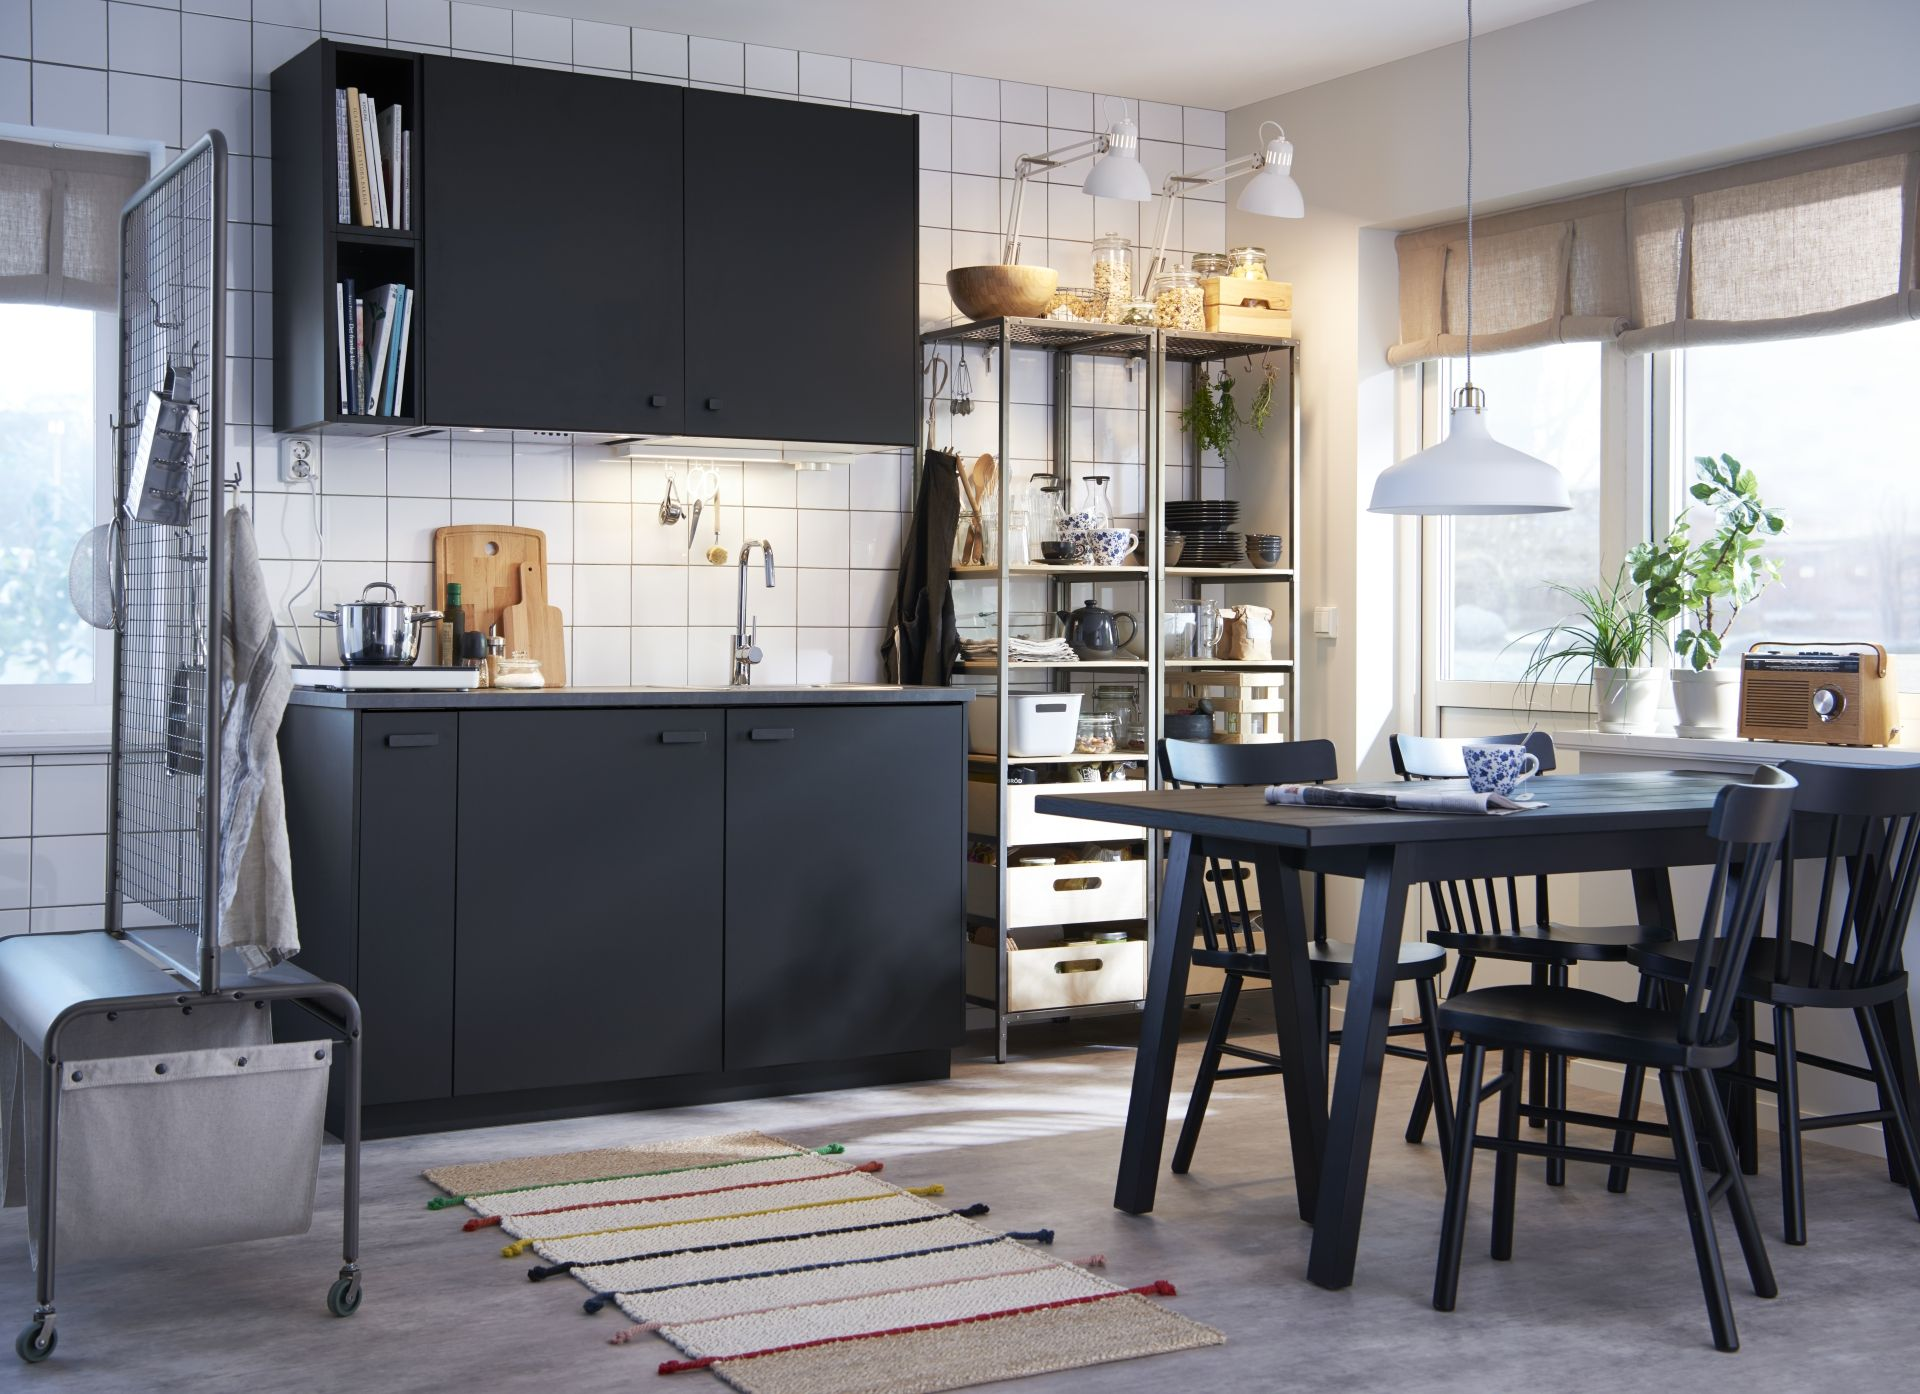 Küchenzubehör Ikea ~ Ikea traditionell stil taupe grau messing griffe bodbyn front